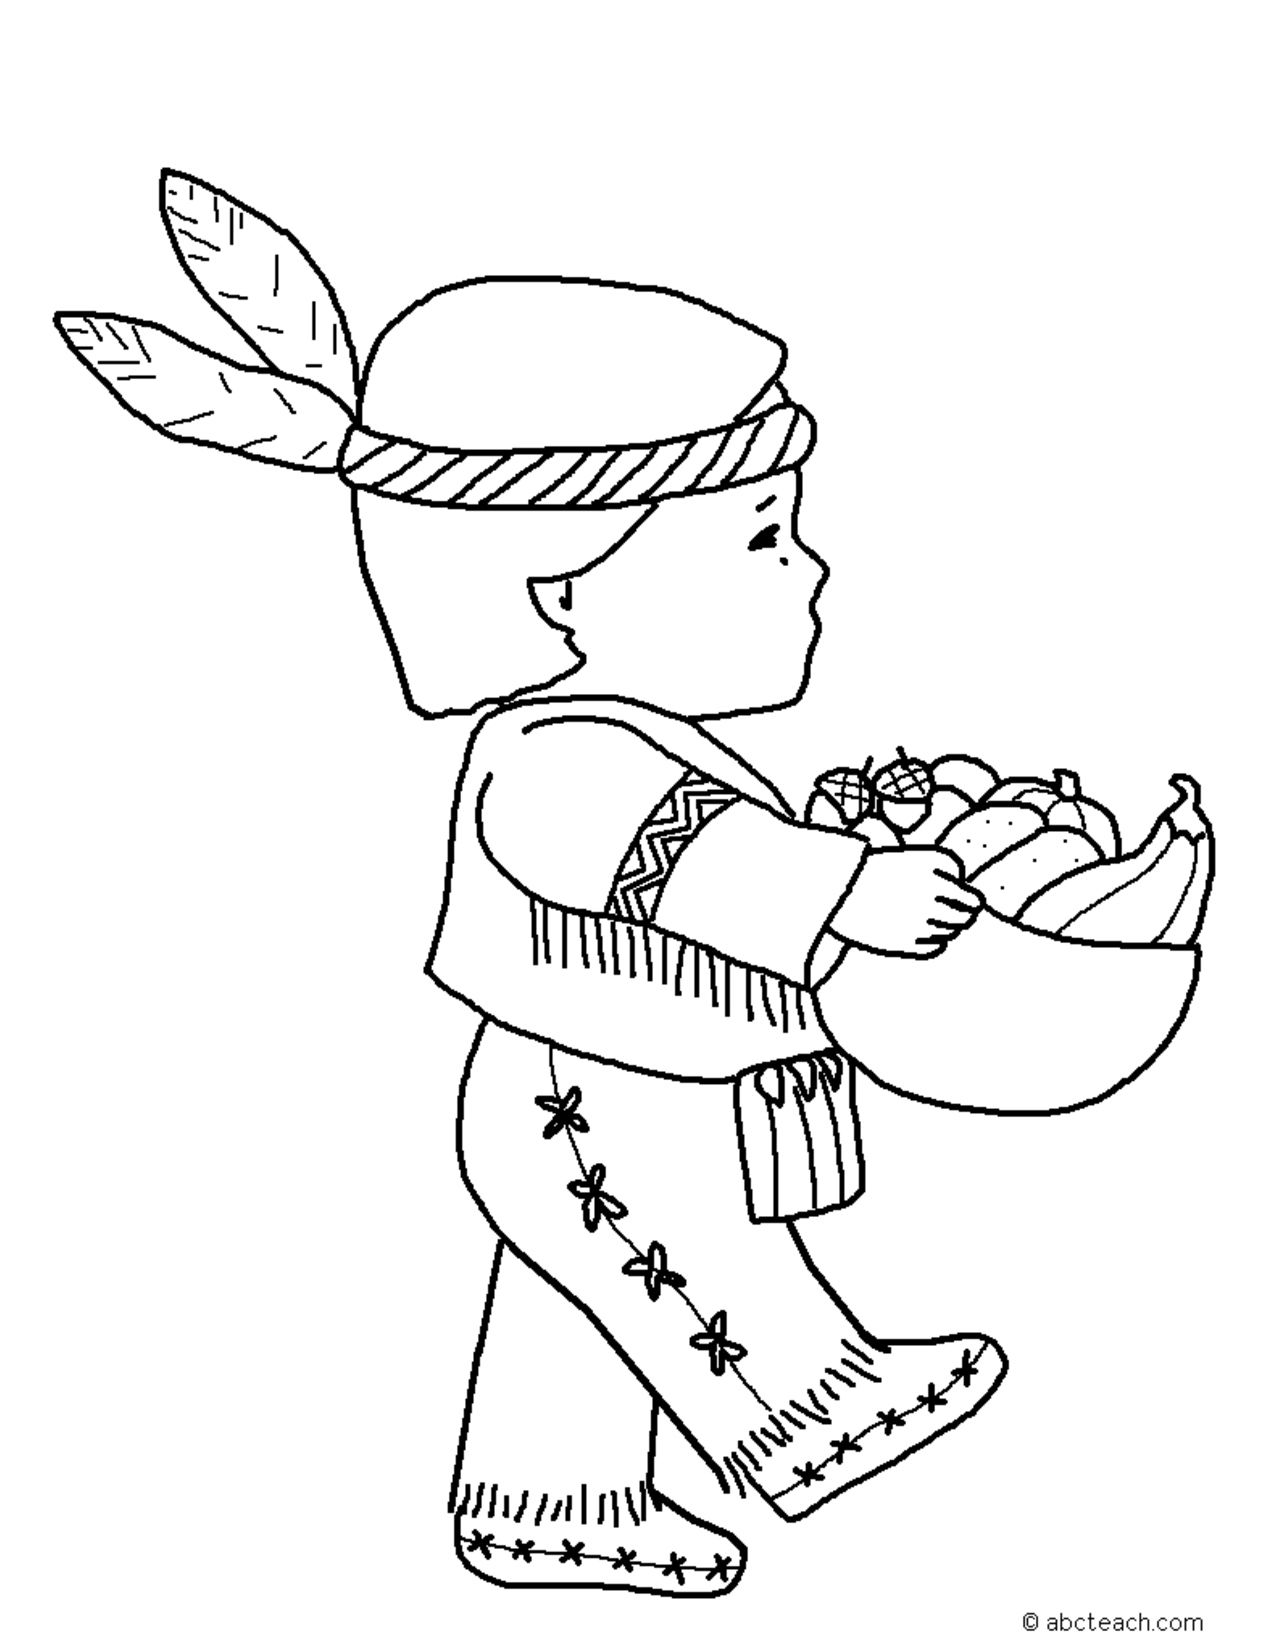 21 Coloring Pages Of Chocolate